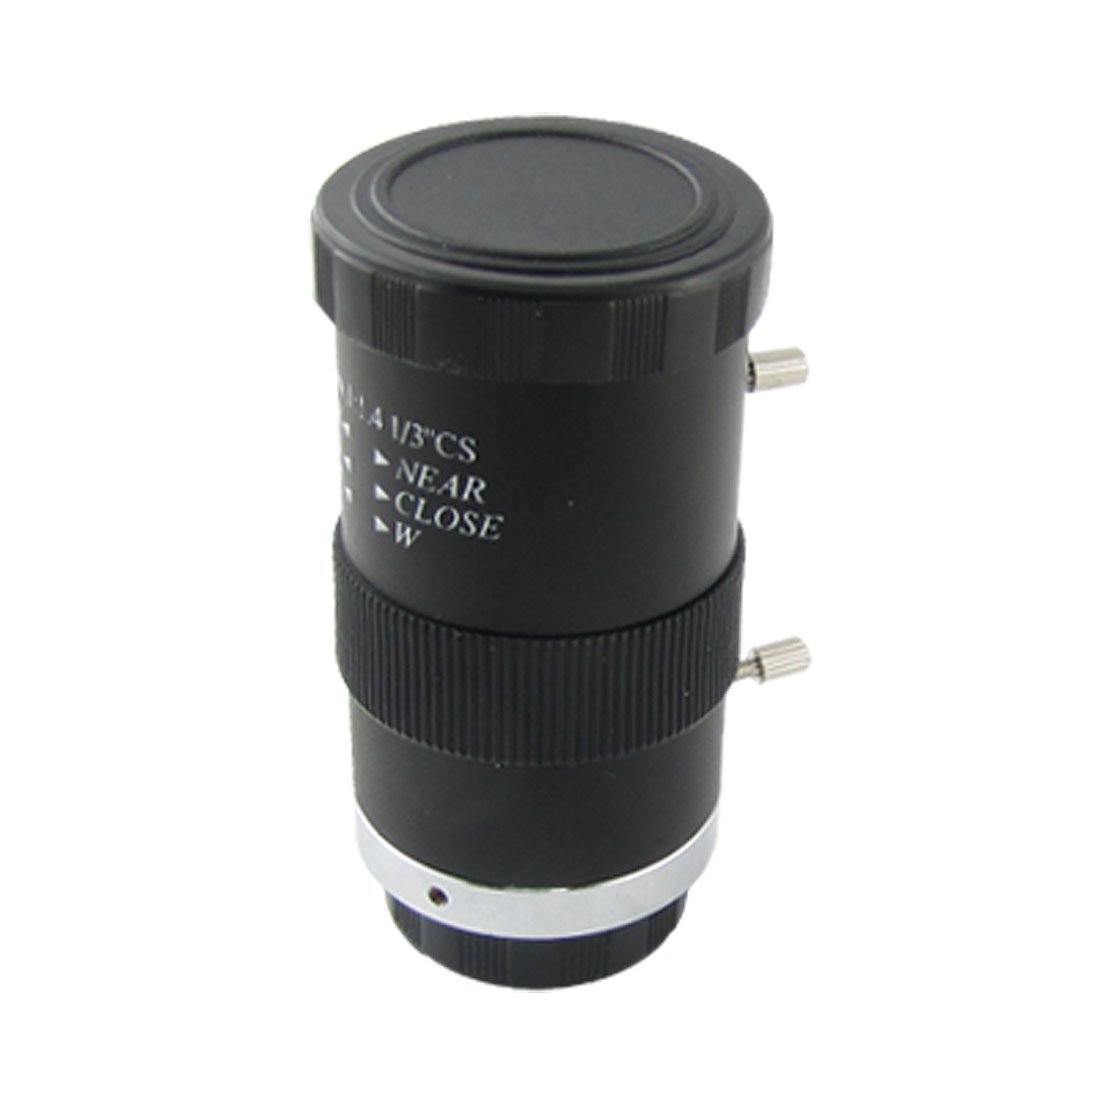 uxcell 6-15mm 1/3'' F1.4 CS Mount Varifocal CCTV Manual Lens by uxcell